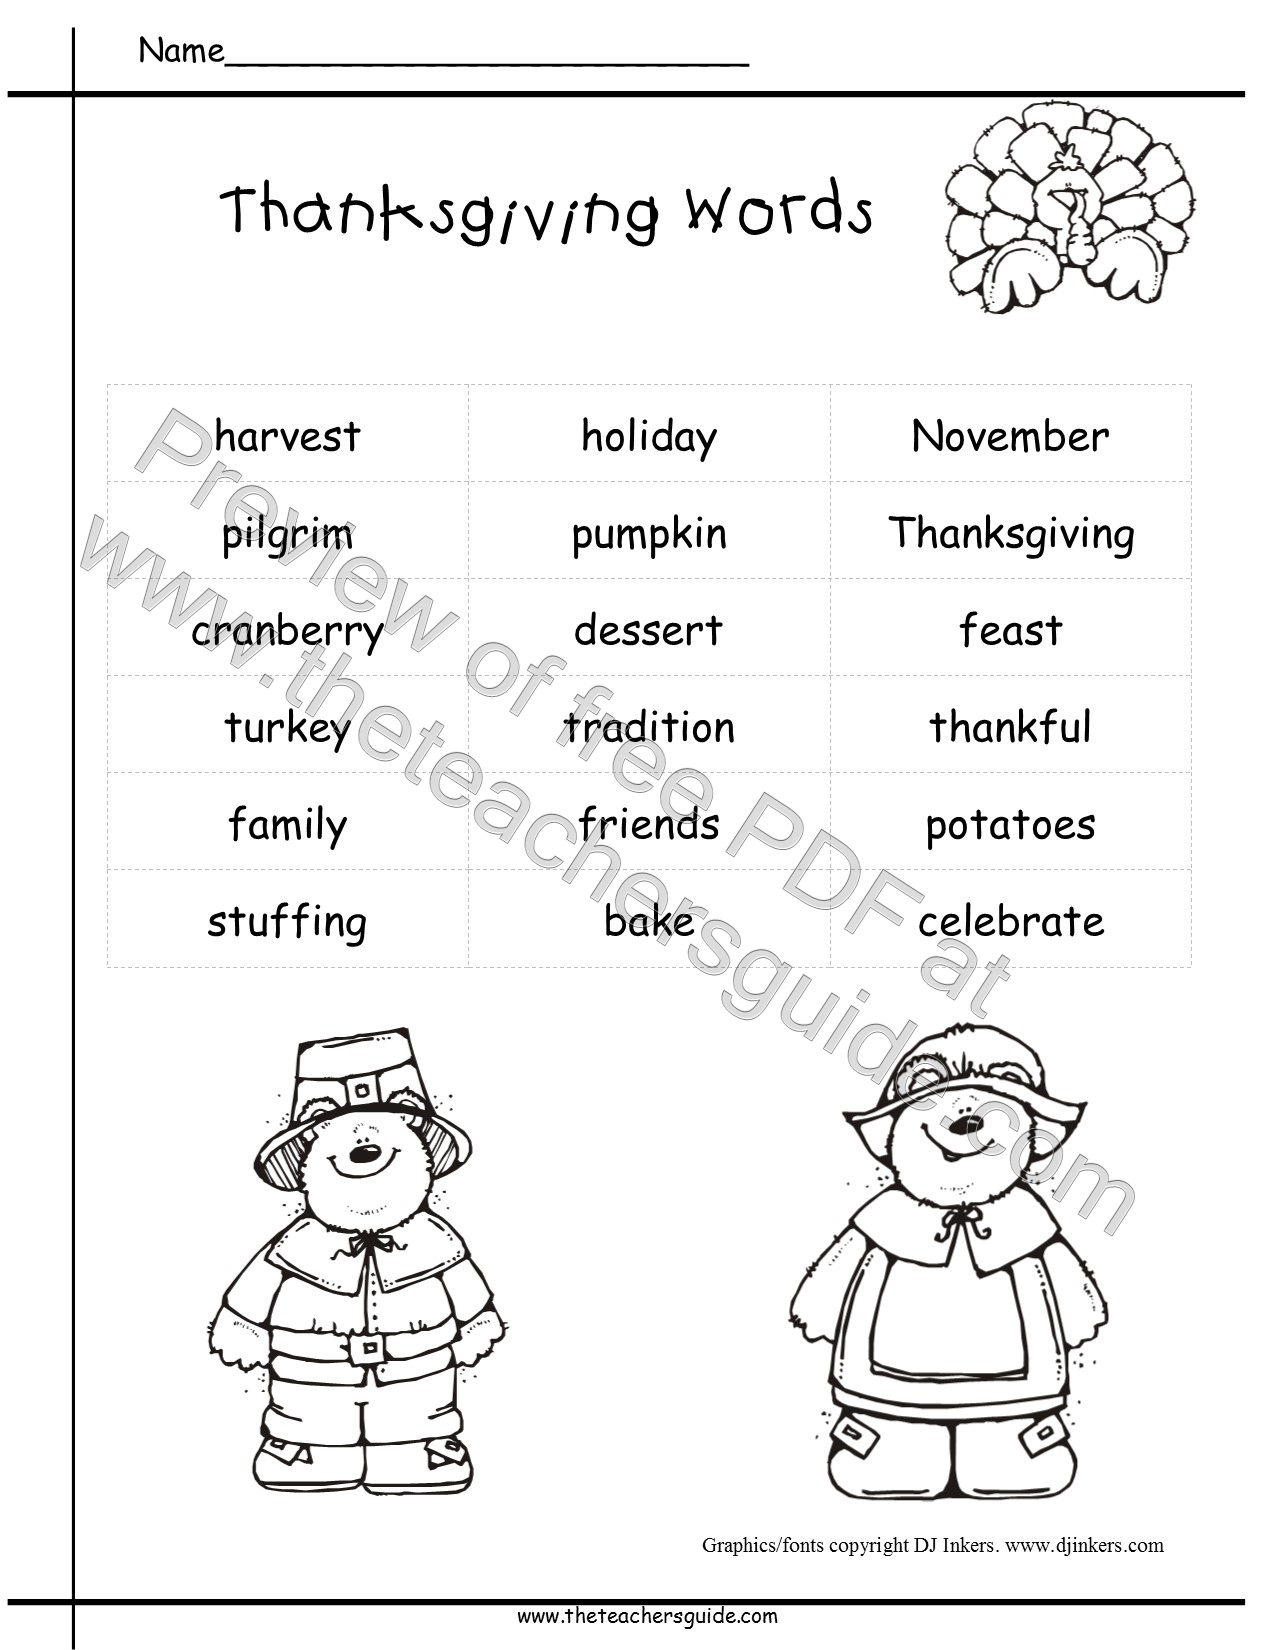 Thanksgiving Printouts from The Teacher's Guide